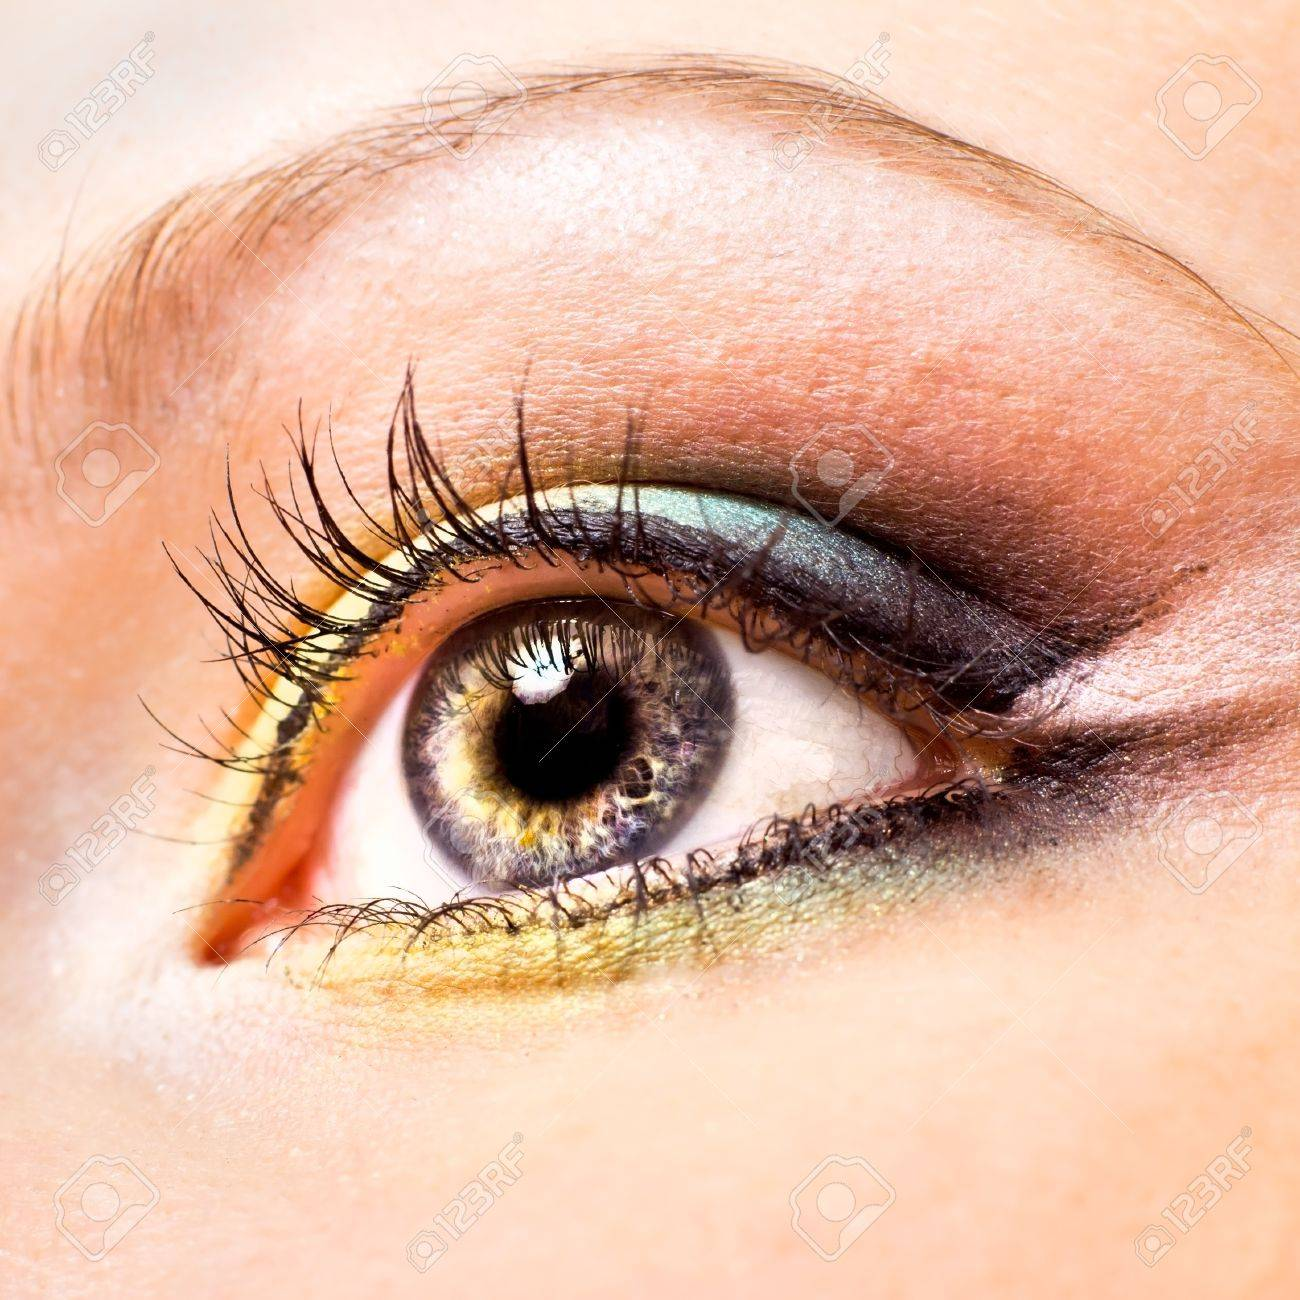 Close-up of beautiful womanish eye with yellow and green make-up - 10285141